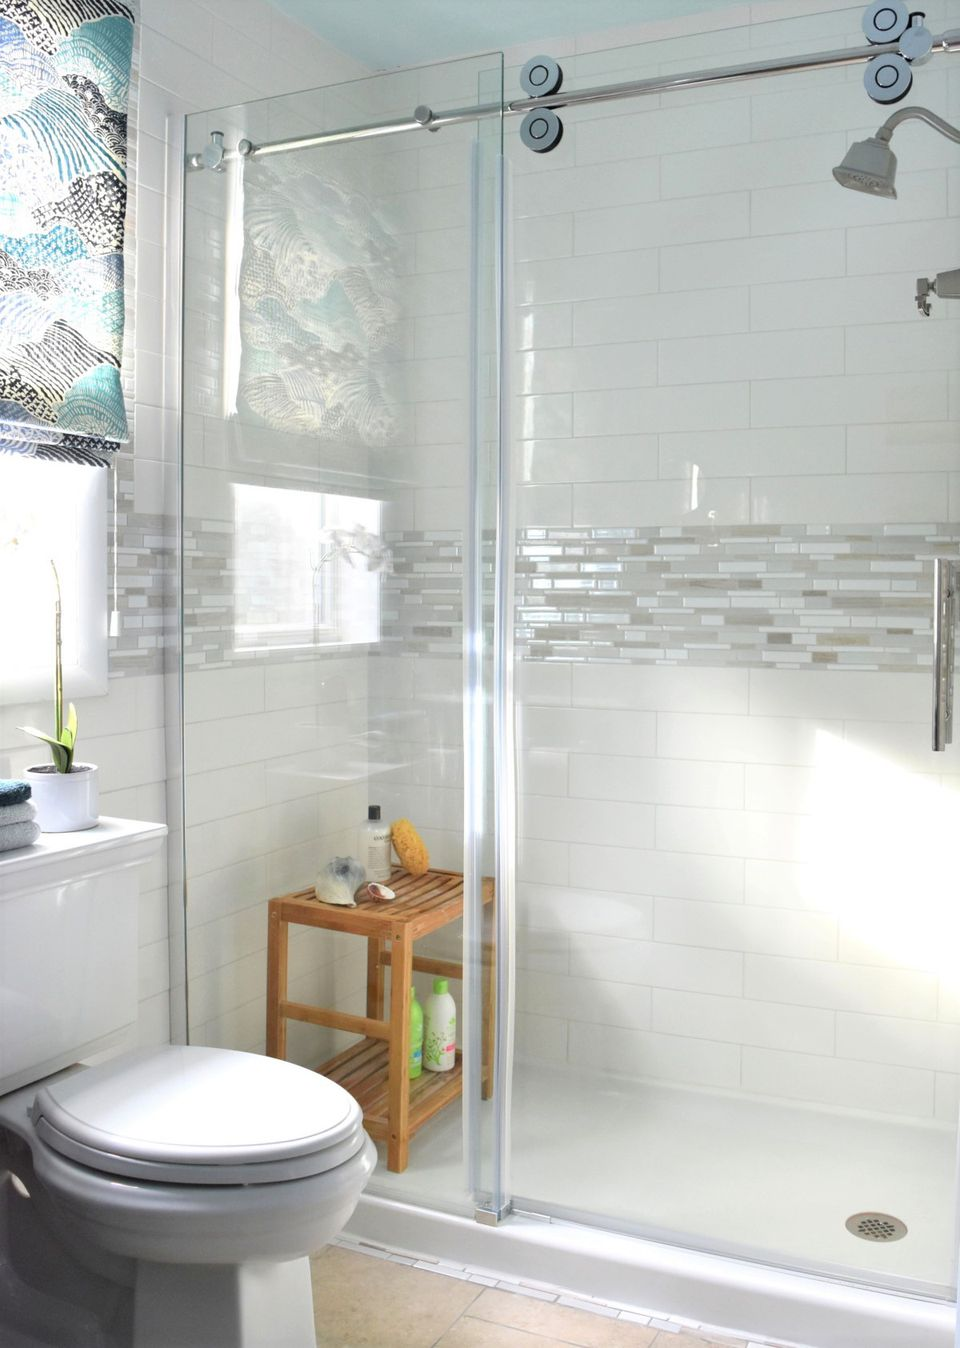 Bathroom shower remodel ideas Bathtub showers for small bathrooms